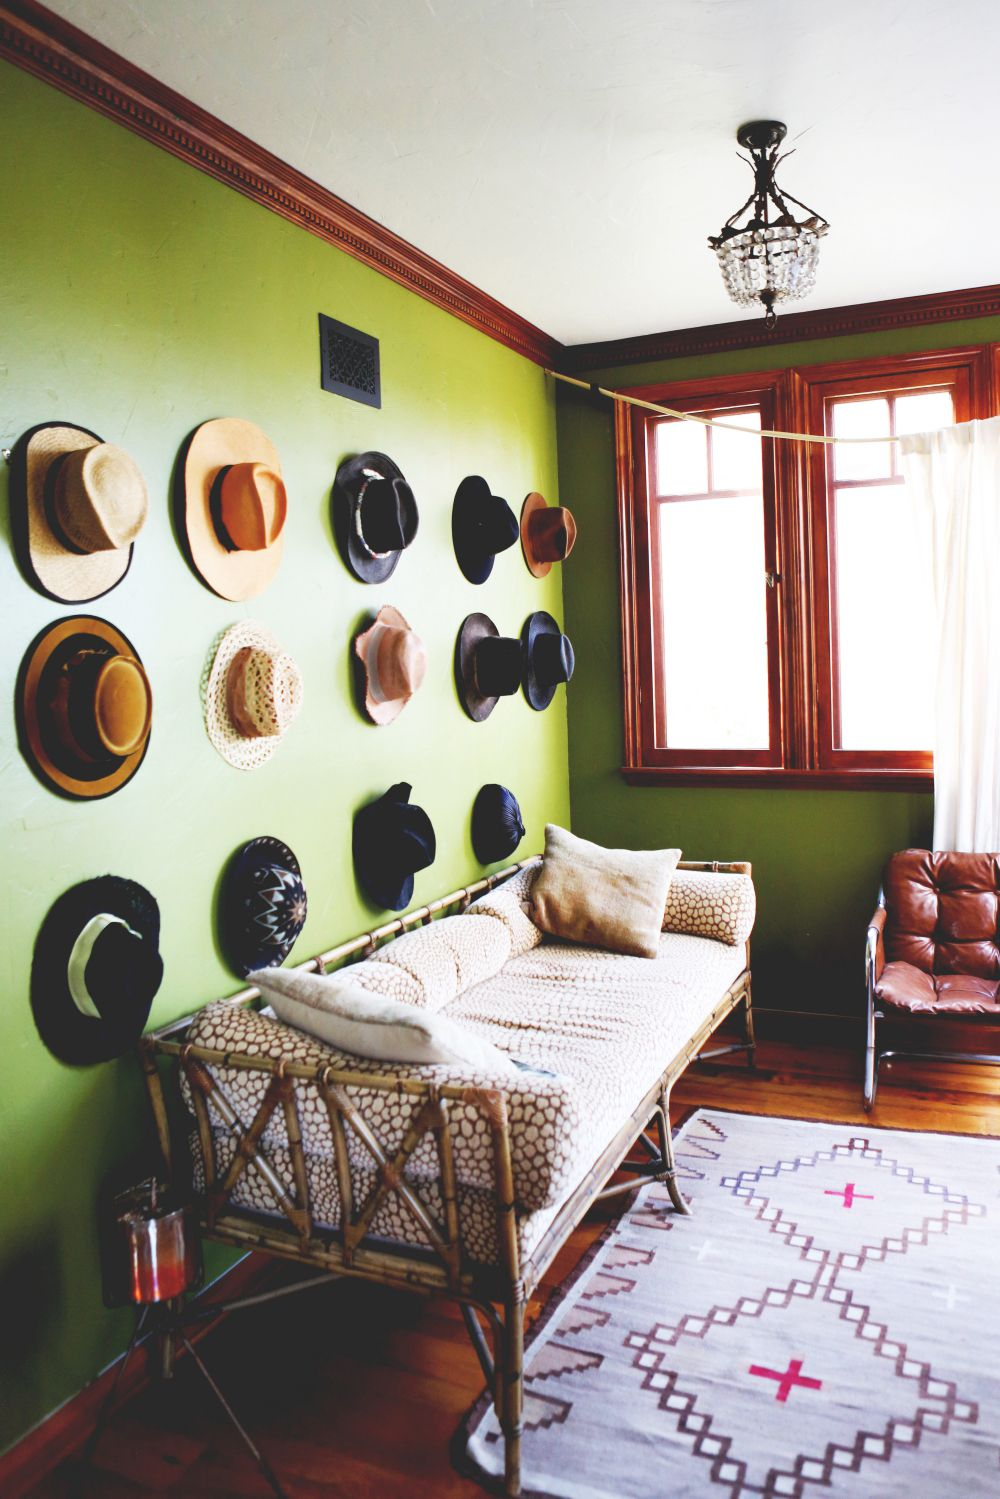 Decorating A Room Online: 11 Cool Online Décor Shops Where It Girls Go To Decorate